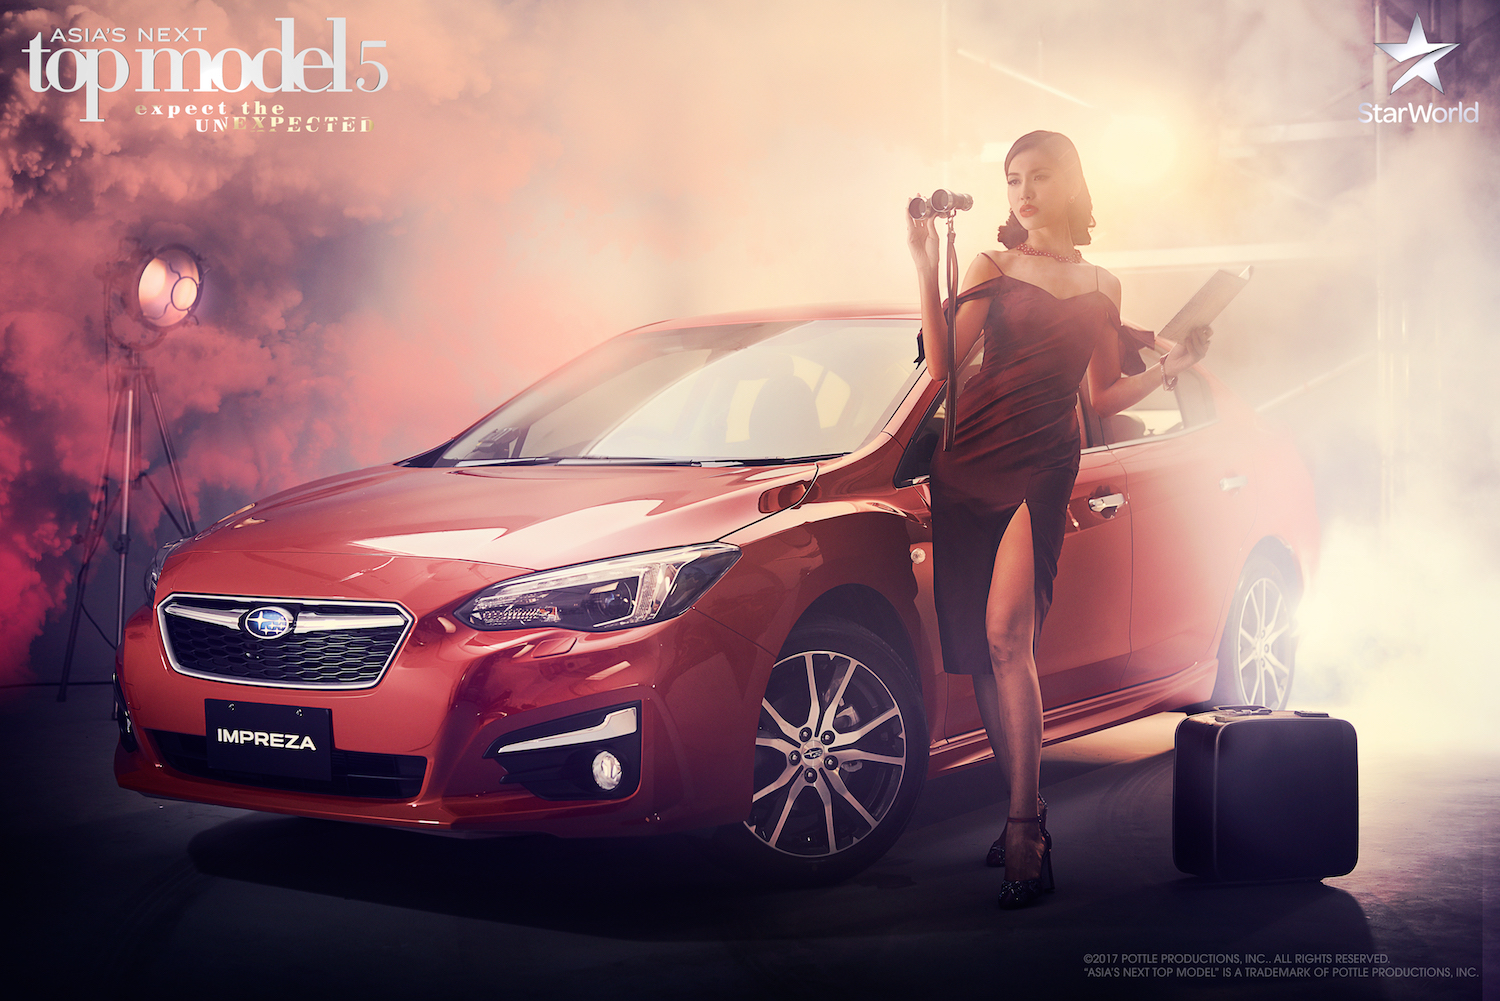 asntm5-photoshoot_ep12_final-di_tu